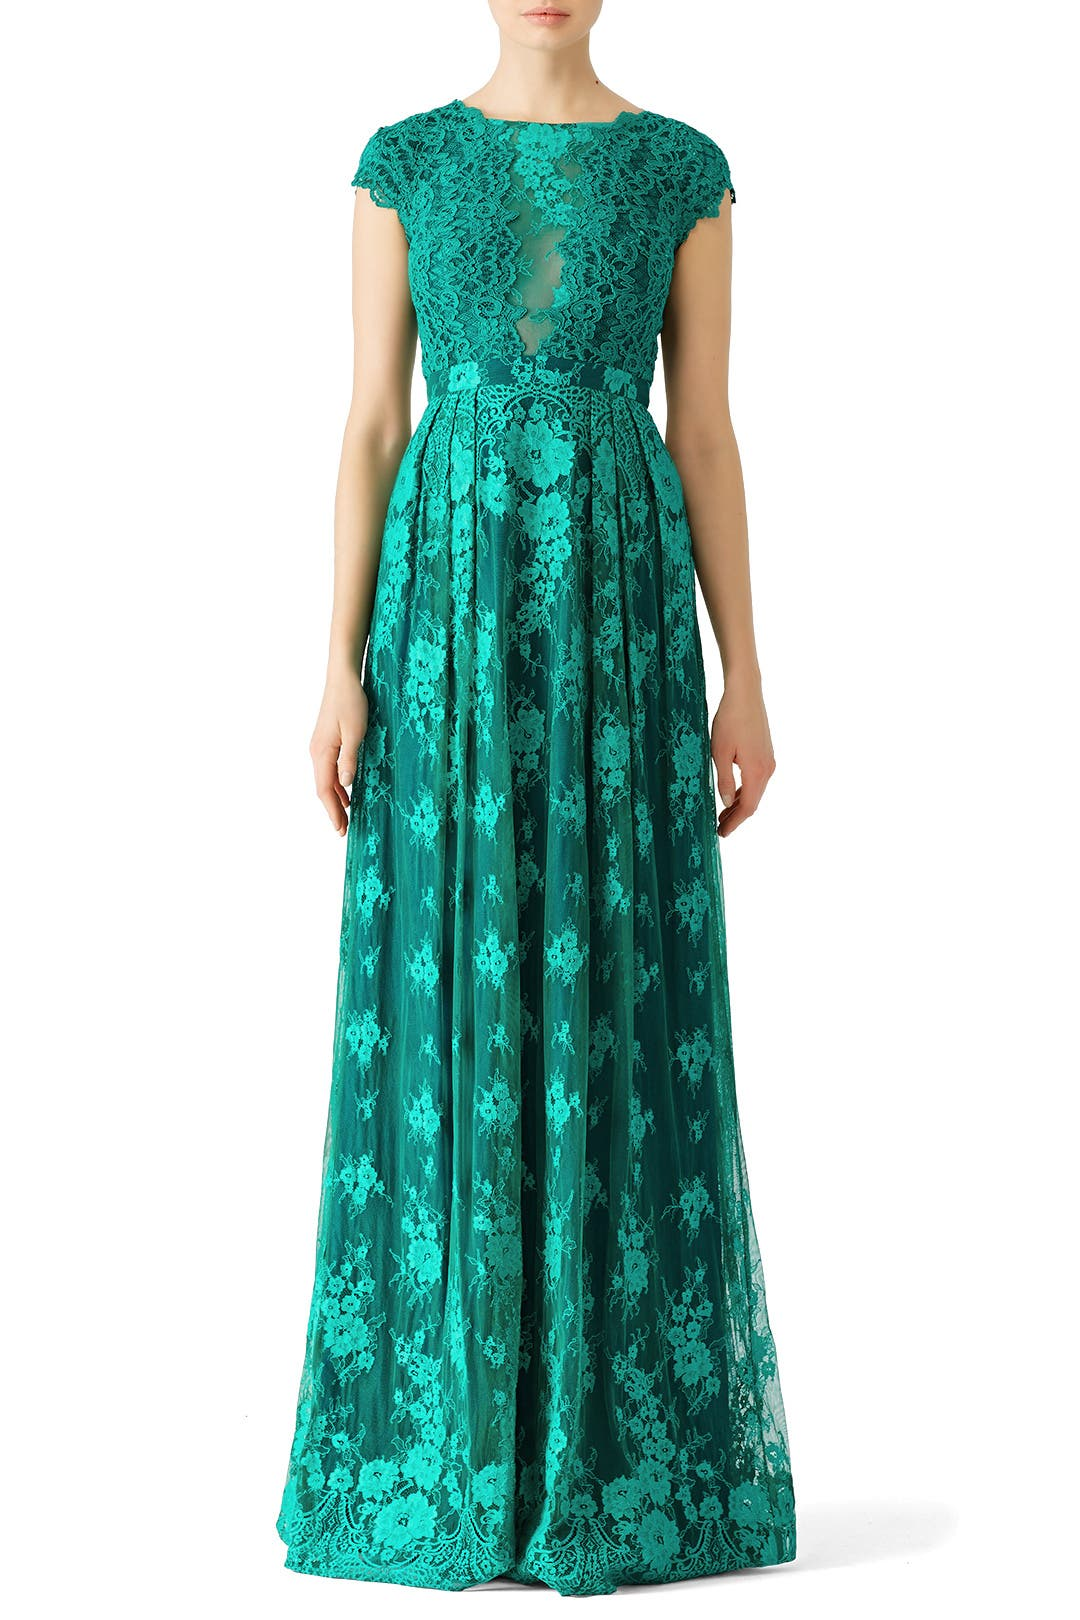 Green Floral Lace Gown By Ml Monique Lhuillier For 75